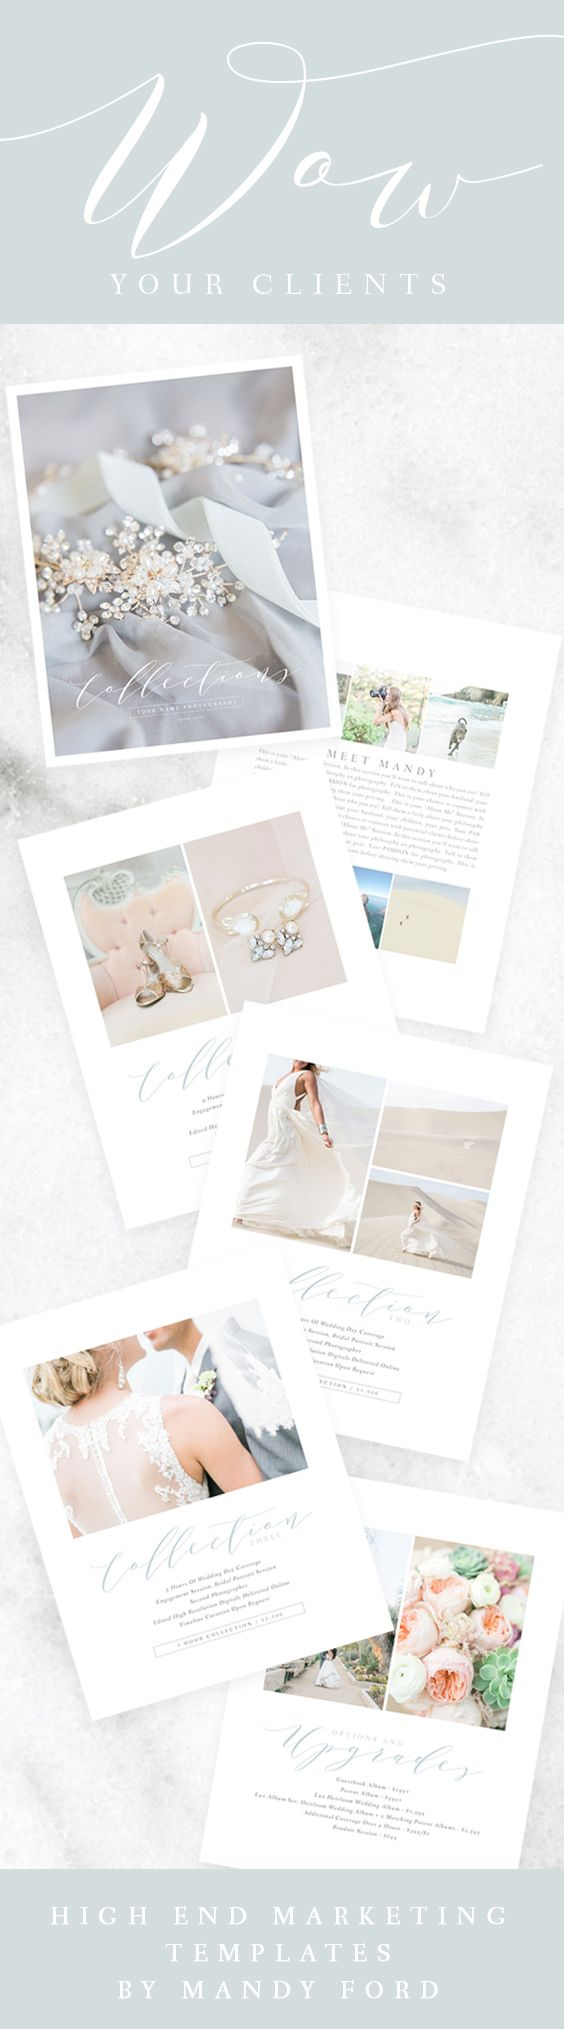 Wedding Photography Price List Multi-Page Guide | Photographer Pricing Guide Template | Wedding Package Pricing